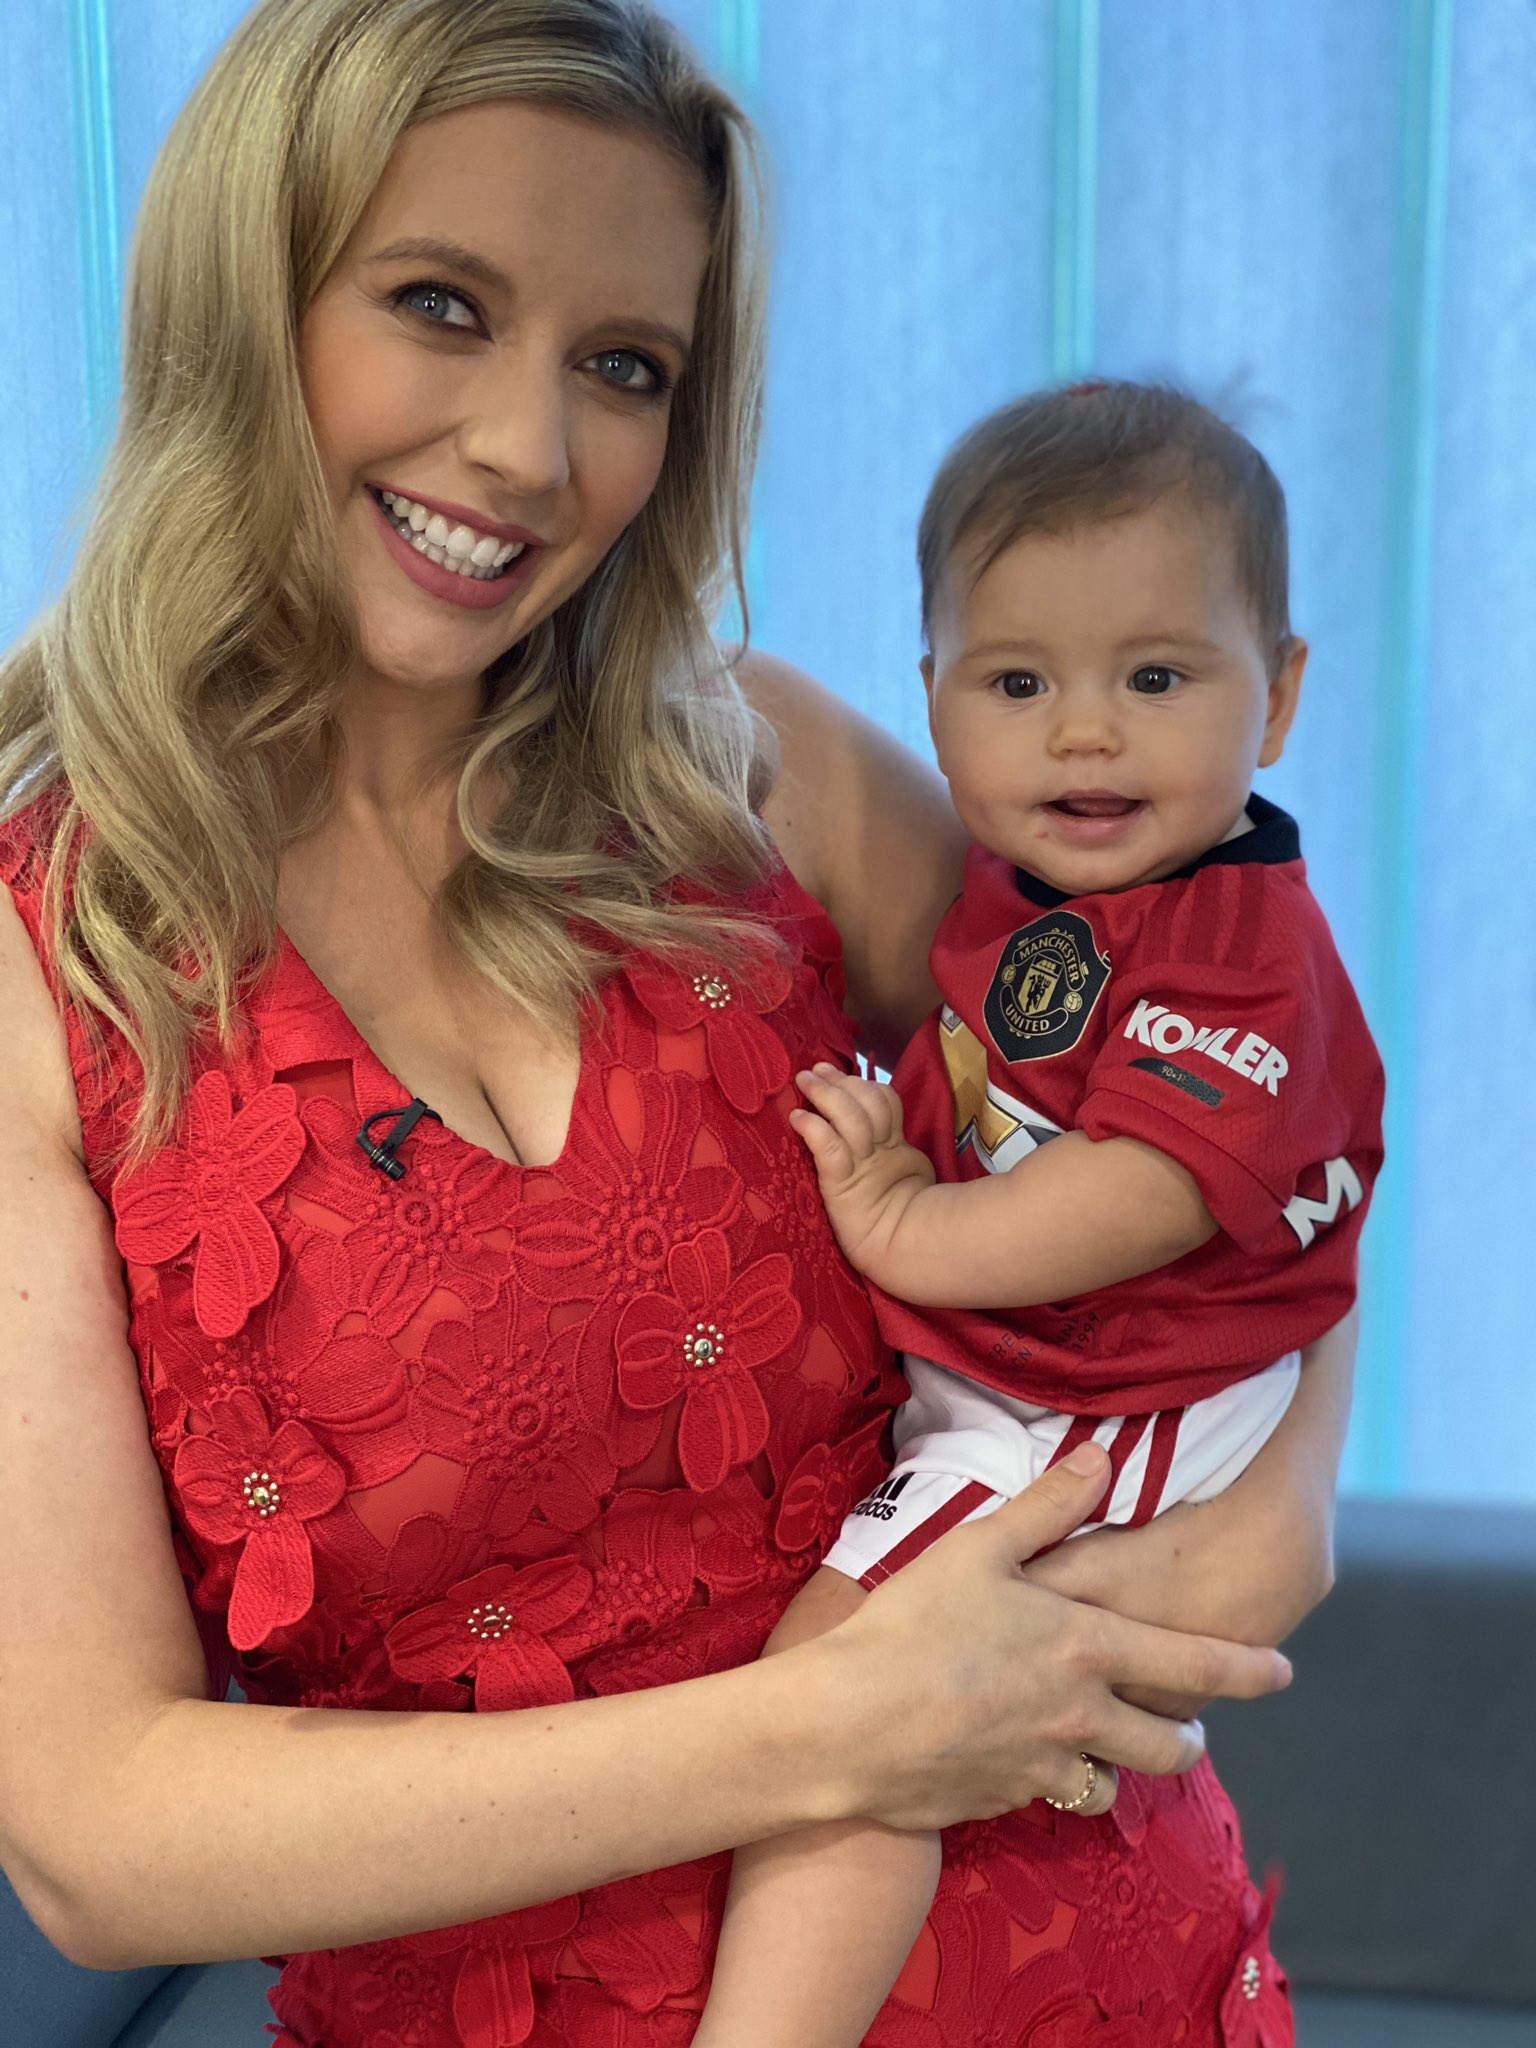 Rachel Riley On Twitter No 7 Is Ready For The Match Come On You Reds Manutd Unitedfamily